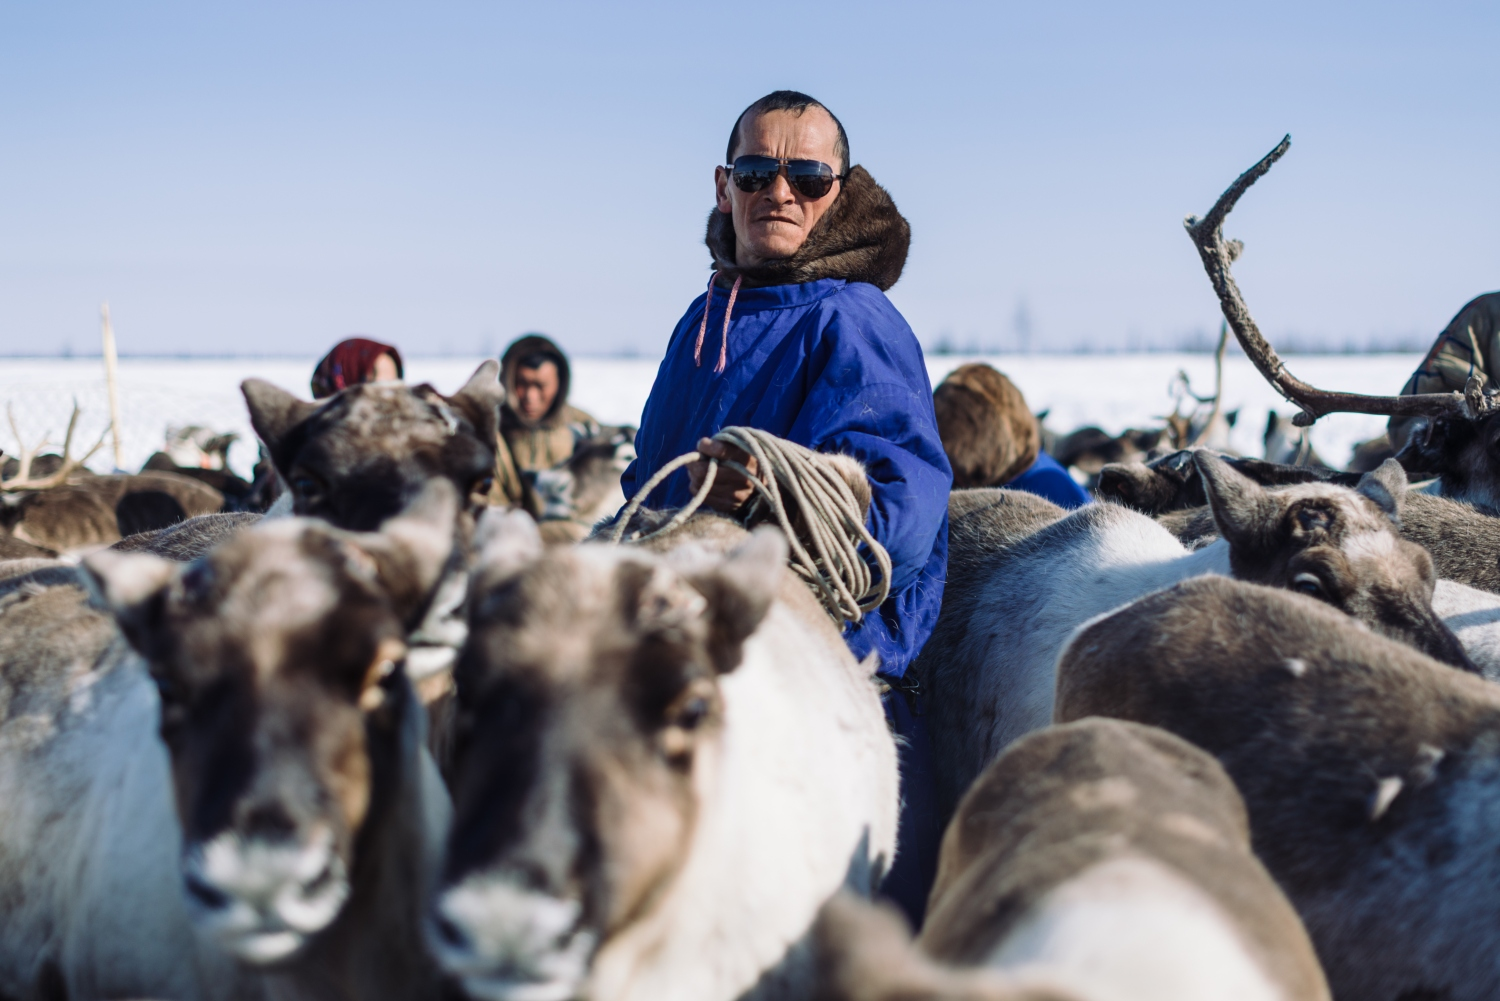 Rounding up the reindeer before moving camp © Lee Kearns